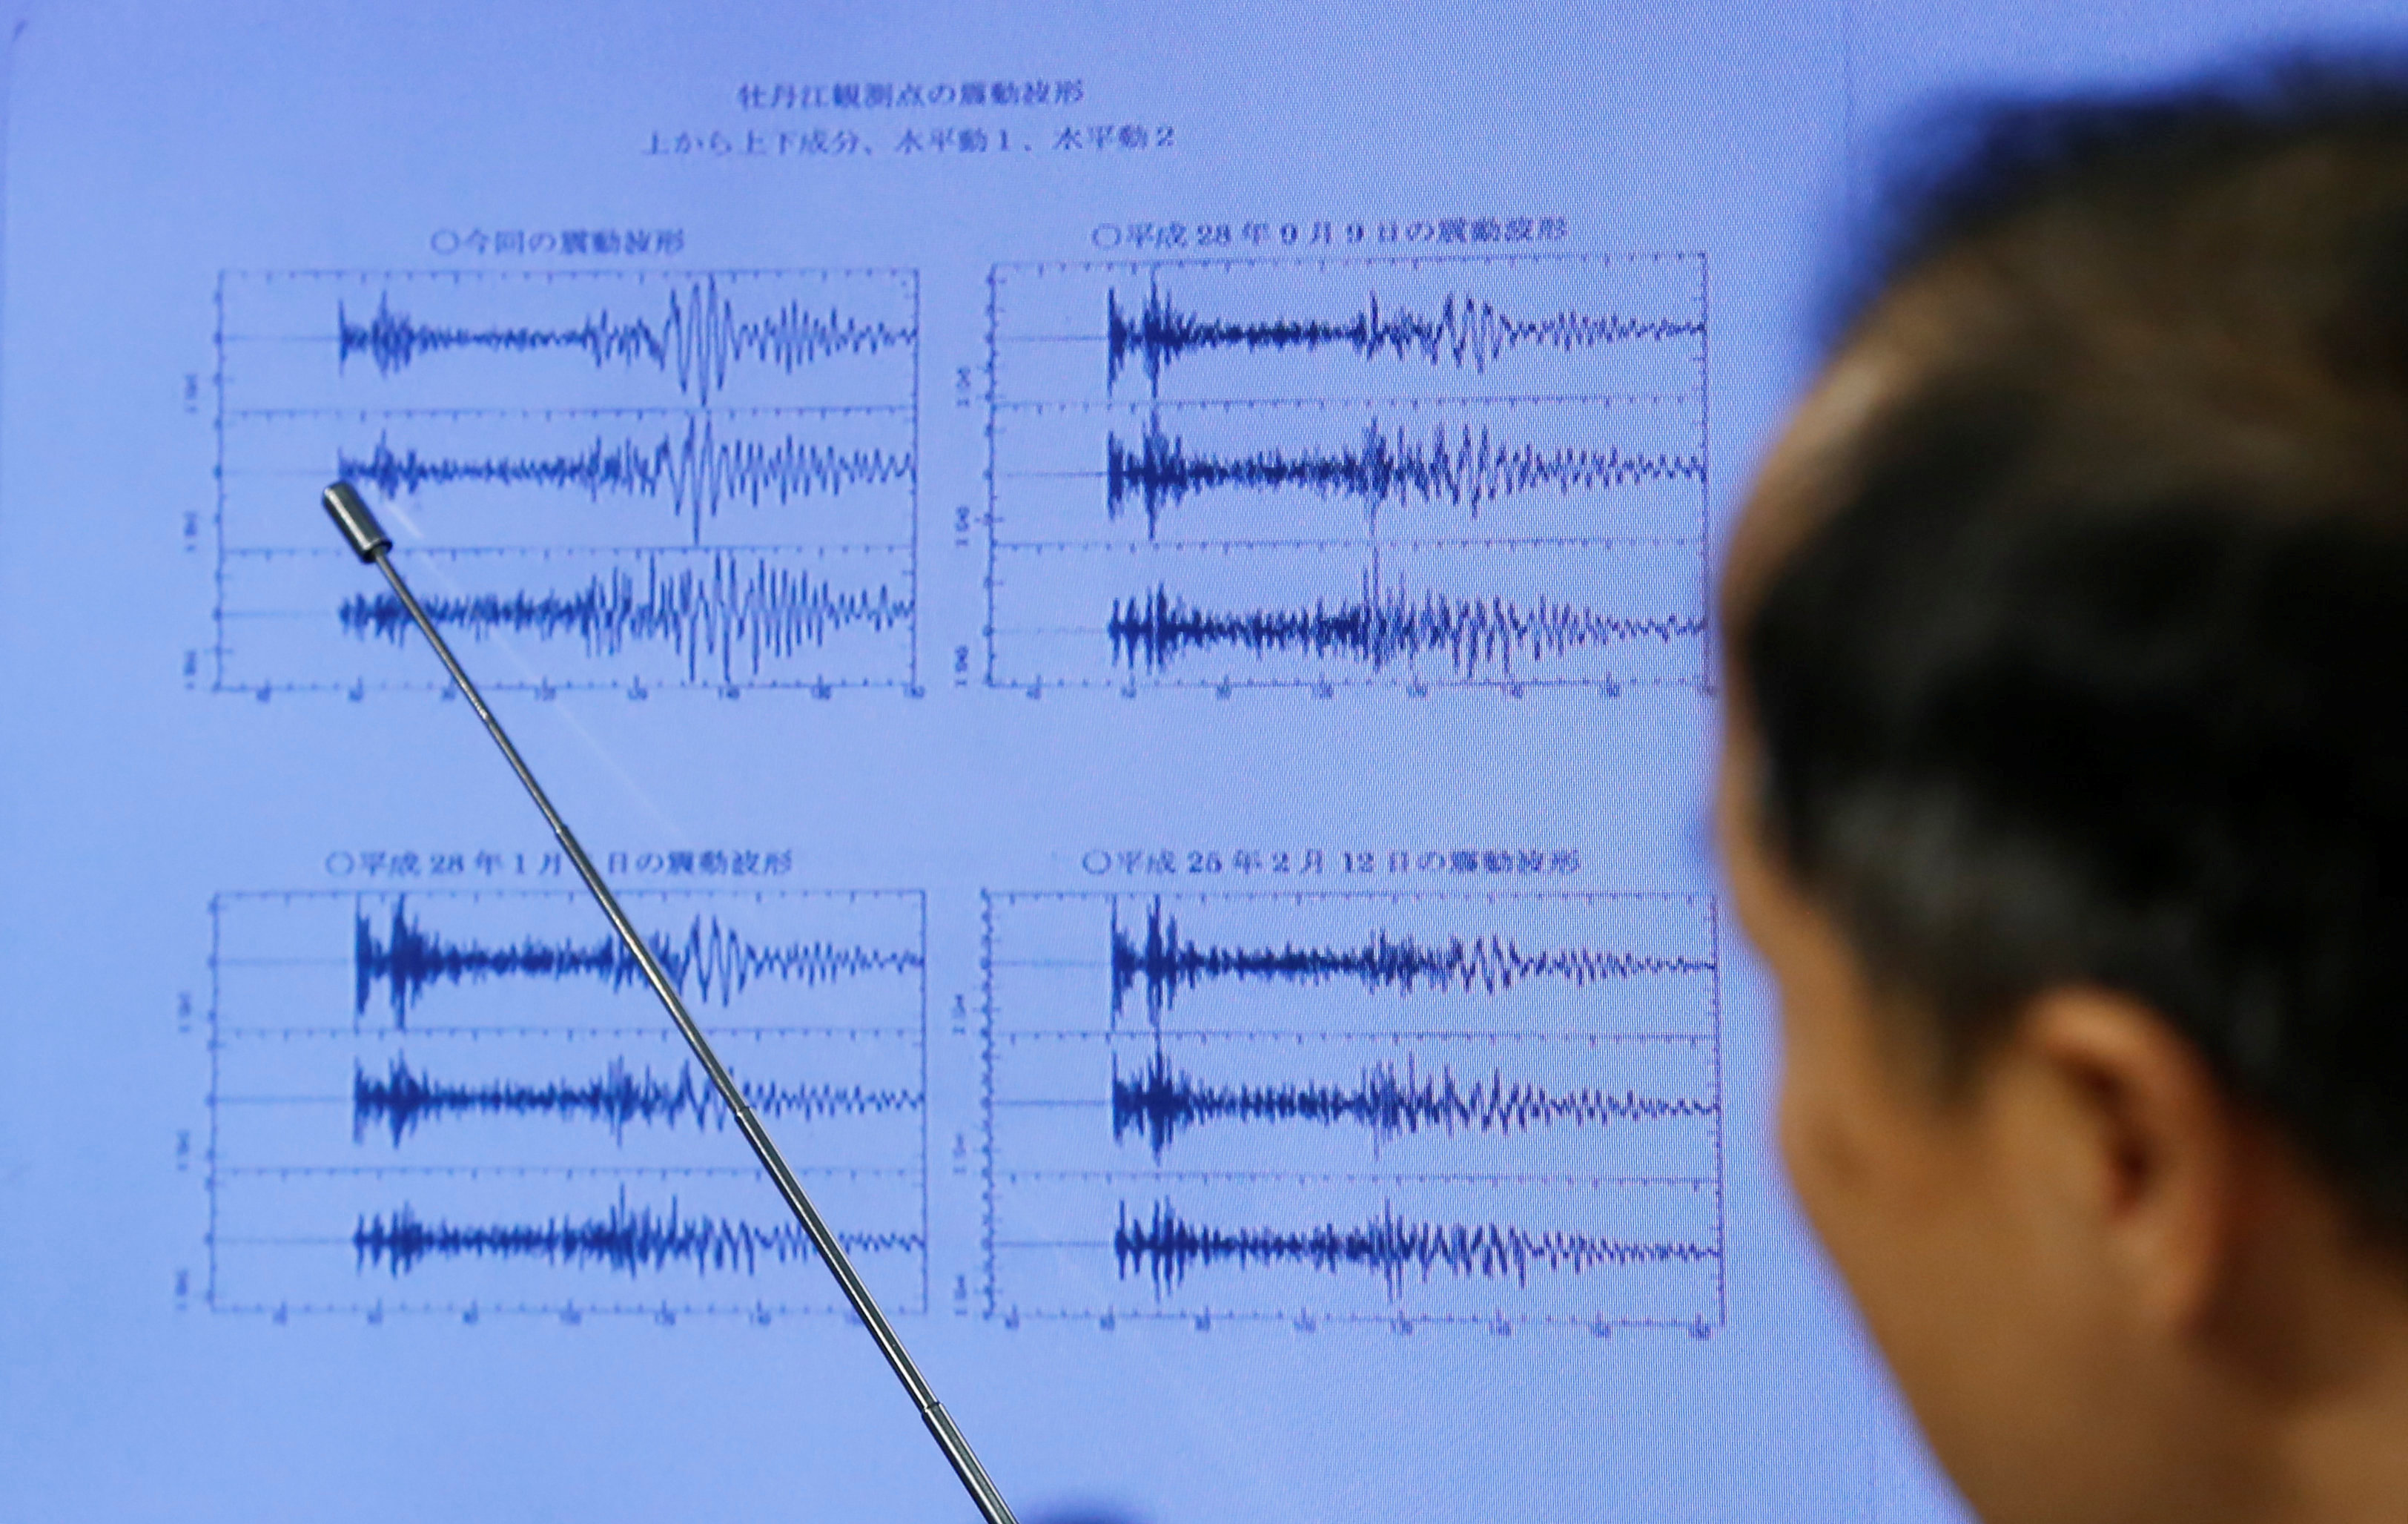 Japan Meteorological Agency's earthquake and tsunami observations division director Toshiyuki Matsumori points at graphs of ground motion waveform data observed in Japan during a news conference at the Japan Meteorological Agency in Tokyo, Japan, on Sept. 3, 2017, following the earthquake felt in North Korea and believed to be a nuclear test. (REUTERS/Toru Hanai)